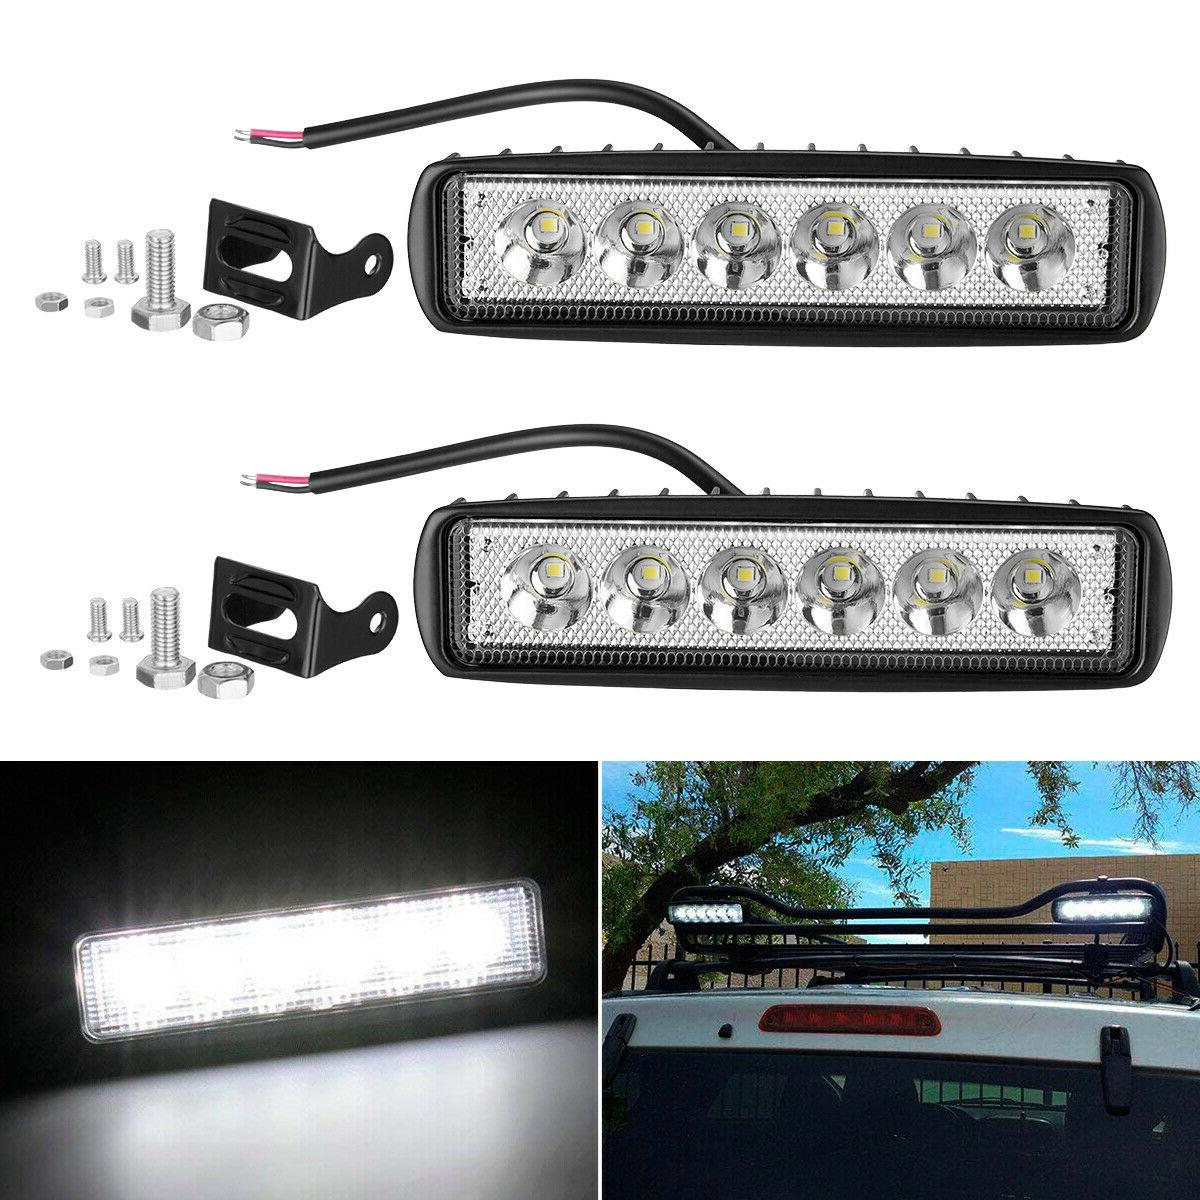 2x 6inch 36w led work light bar